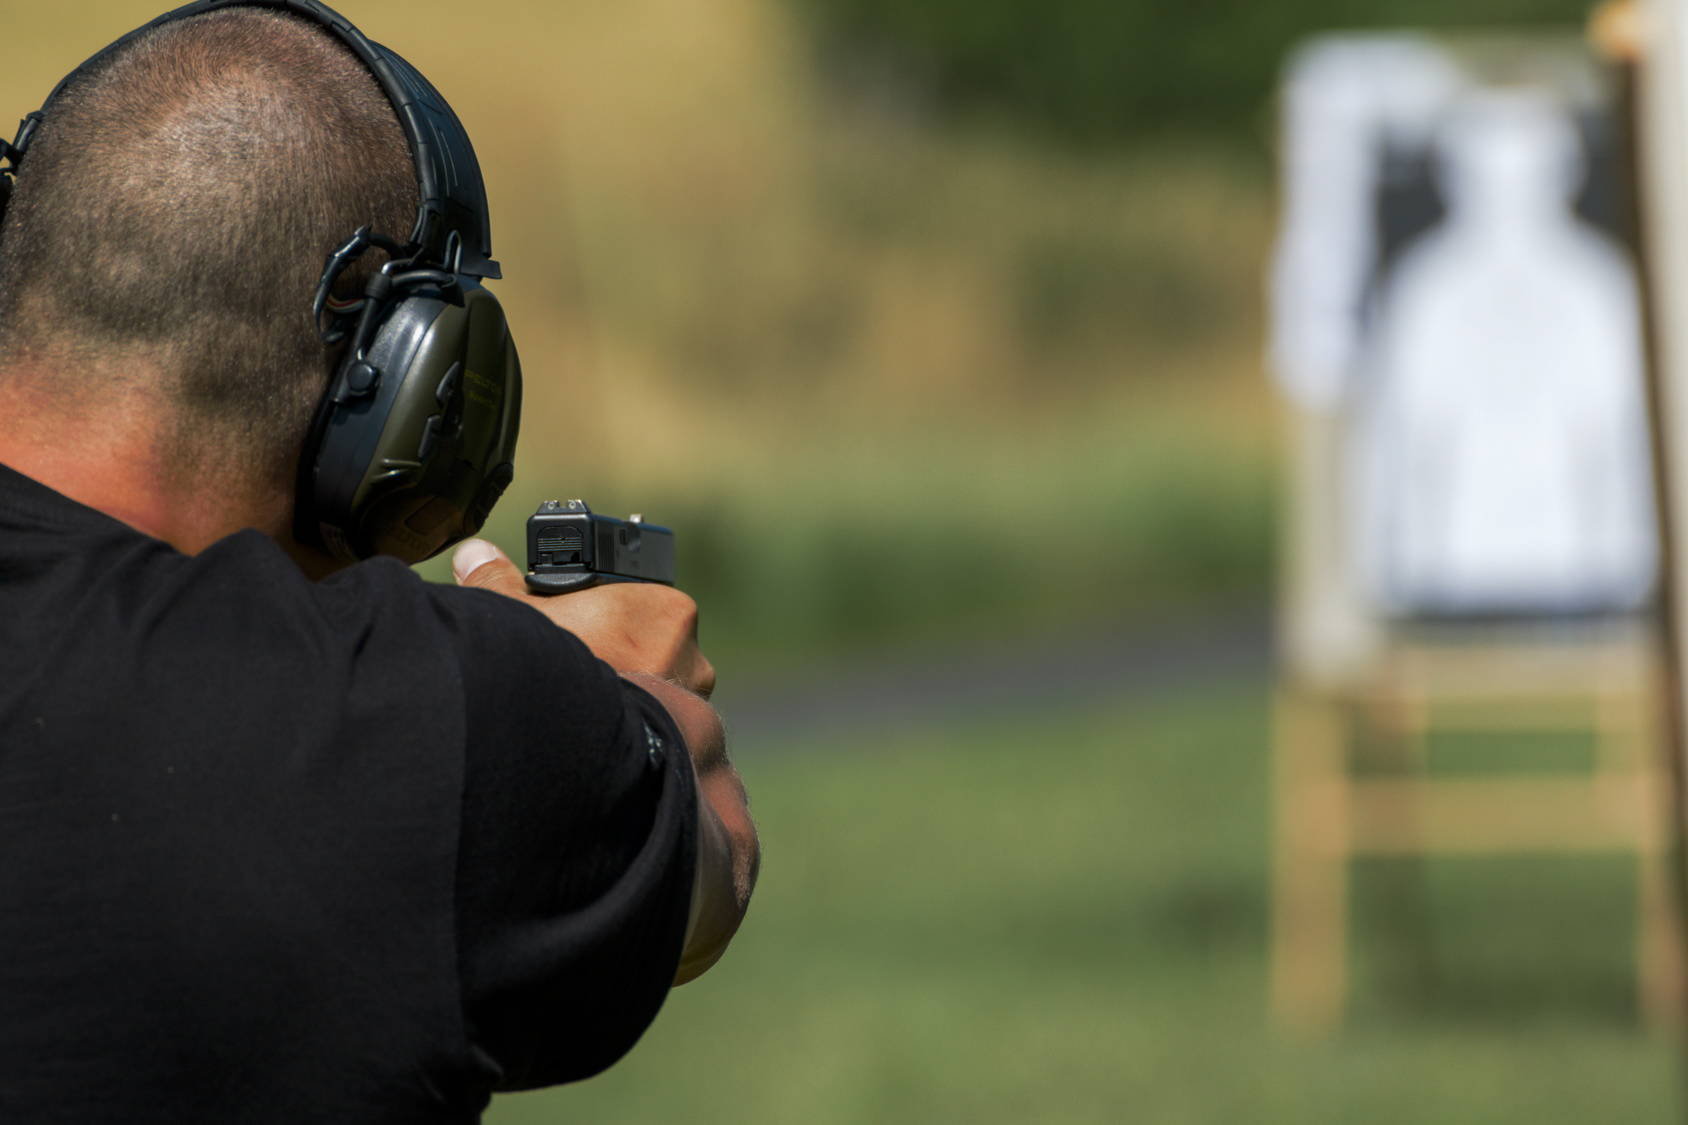 Survival gear systems, shooting range etiquette